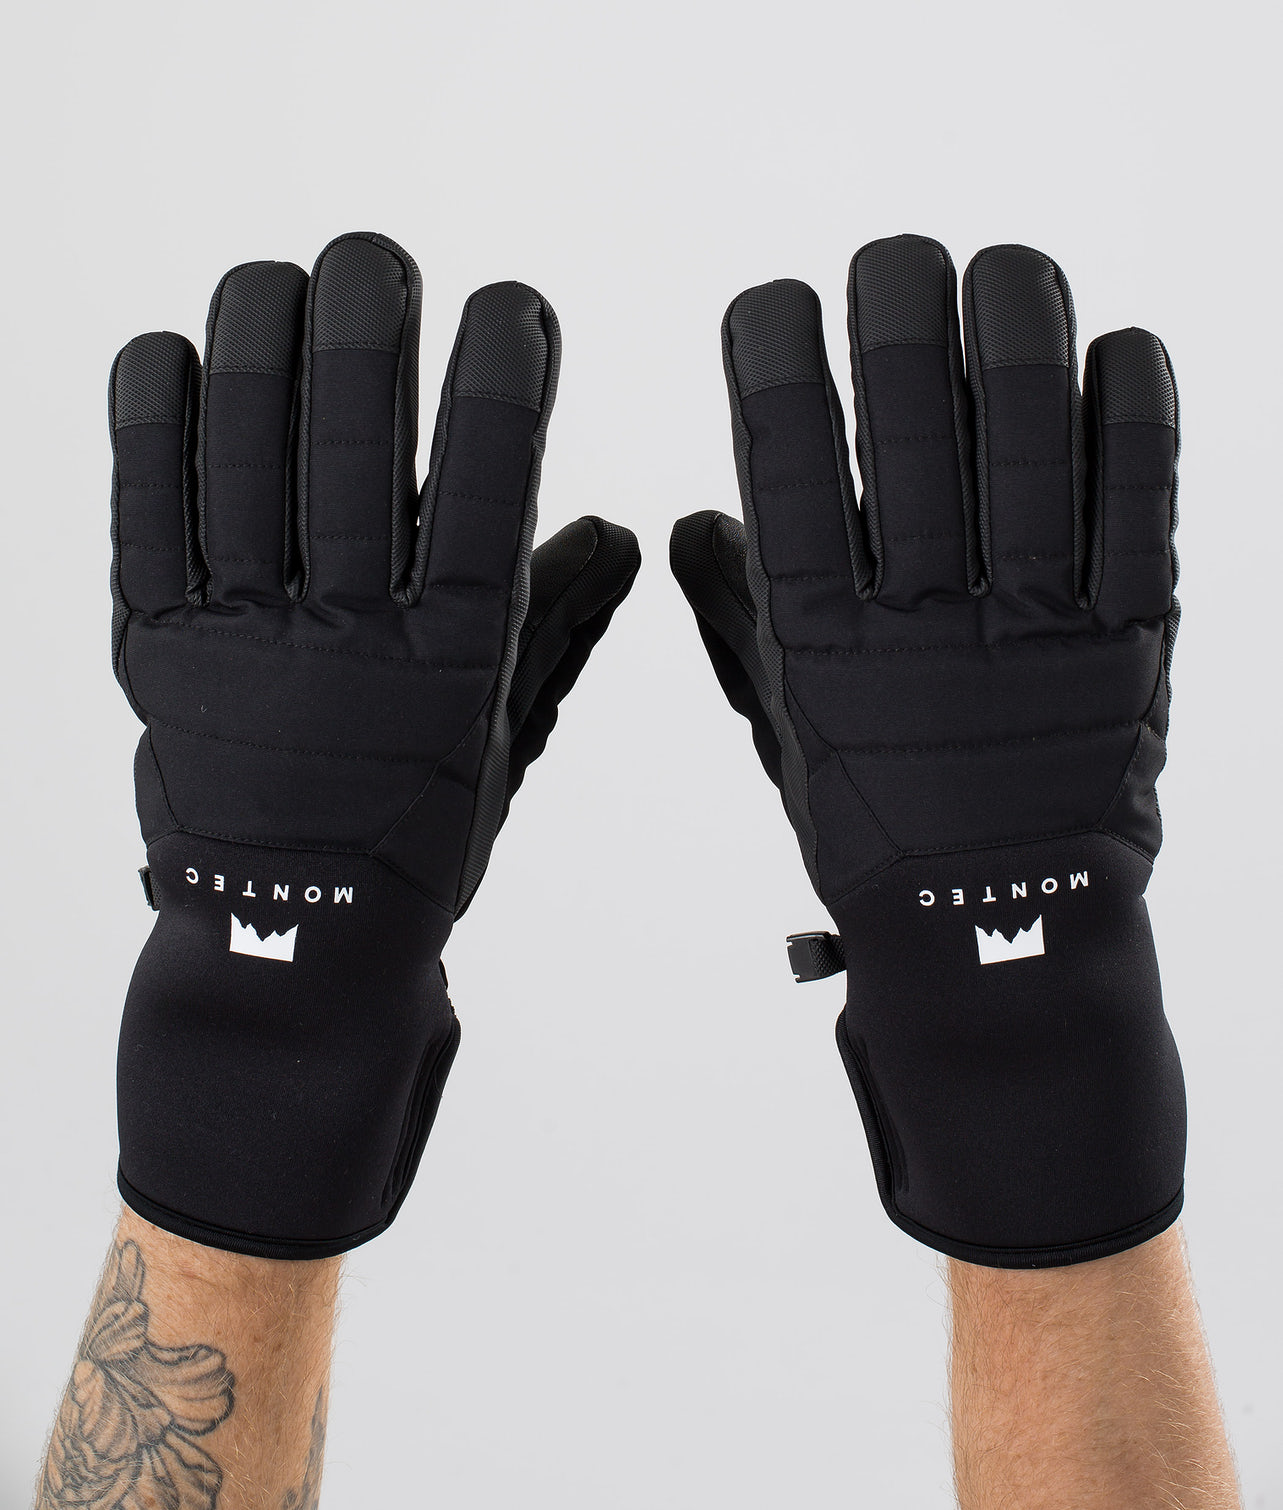 Buy Kilo Glove Ski Gloves from Montec at Ridestore.com - Always free shipping, free returns and 30 days money back guarantee